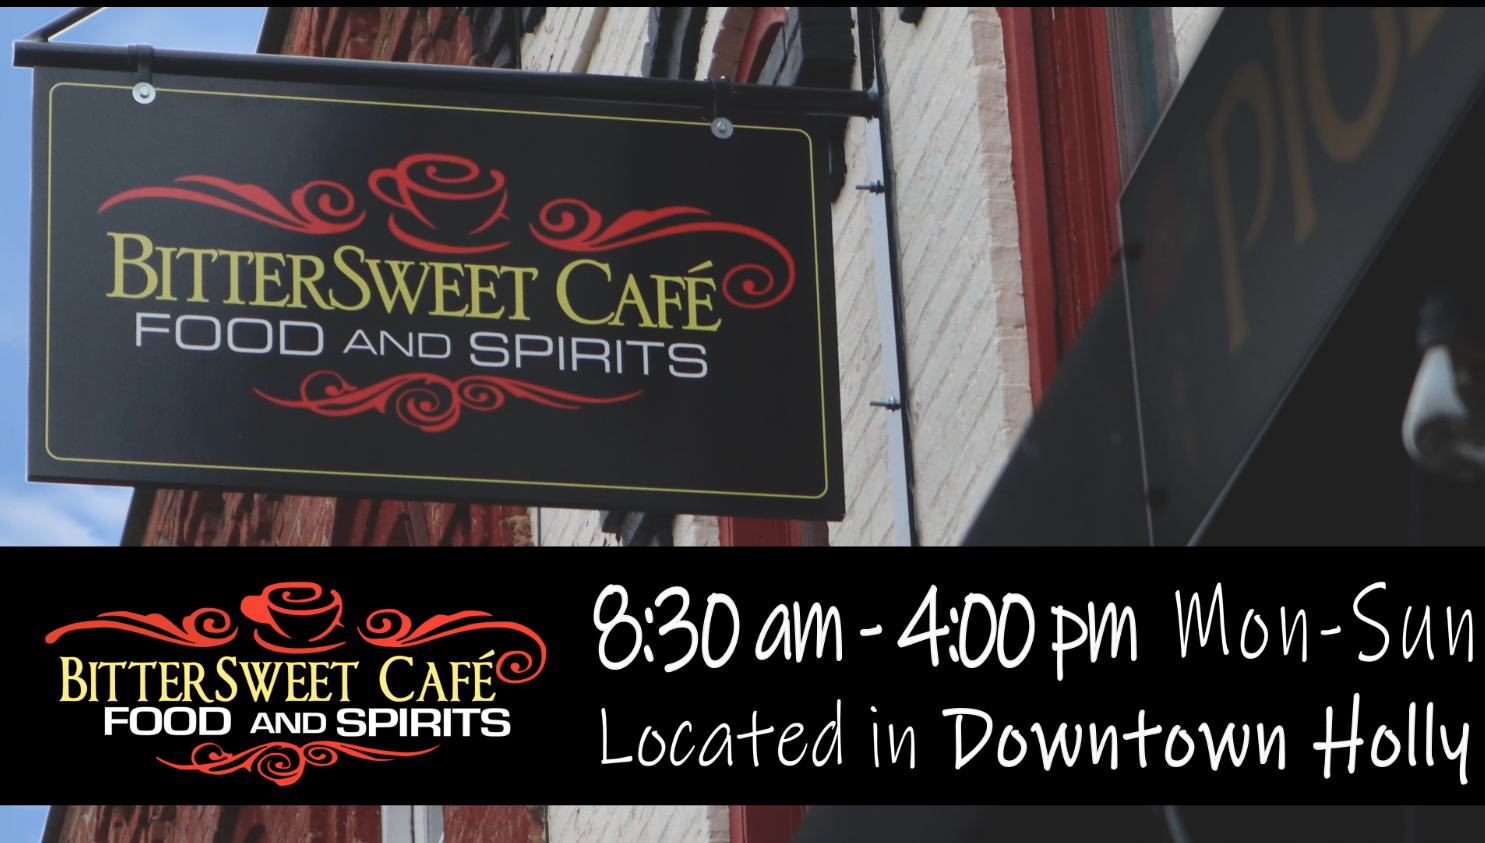 BitterSweet Cafe Food and Spirits